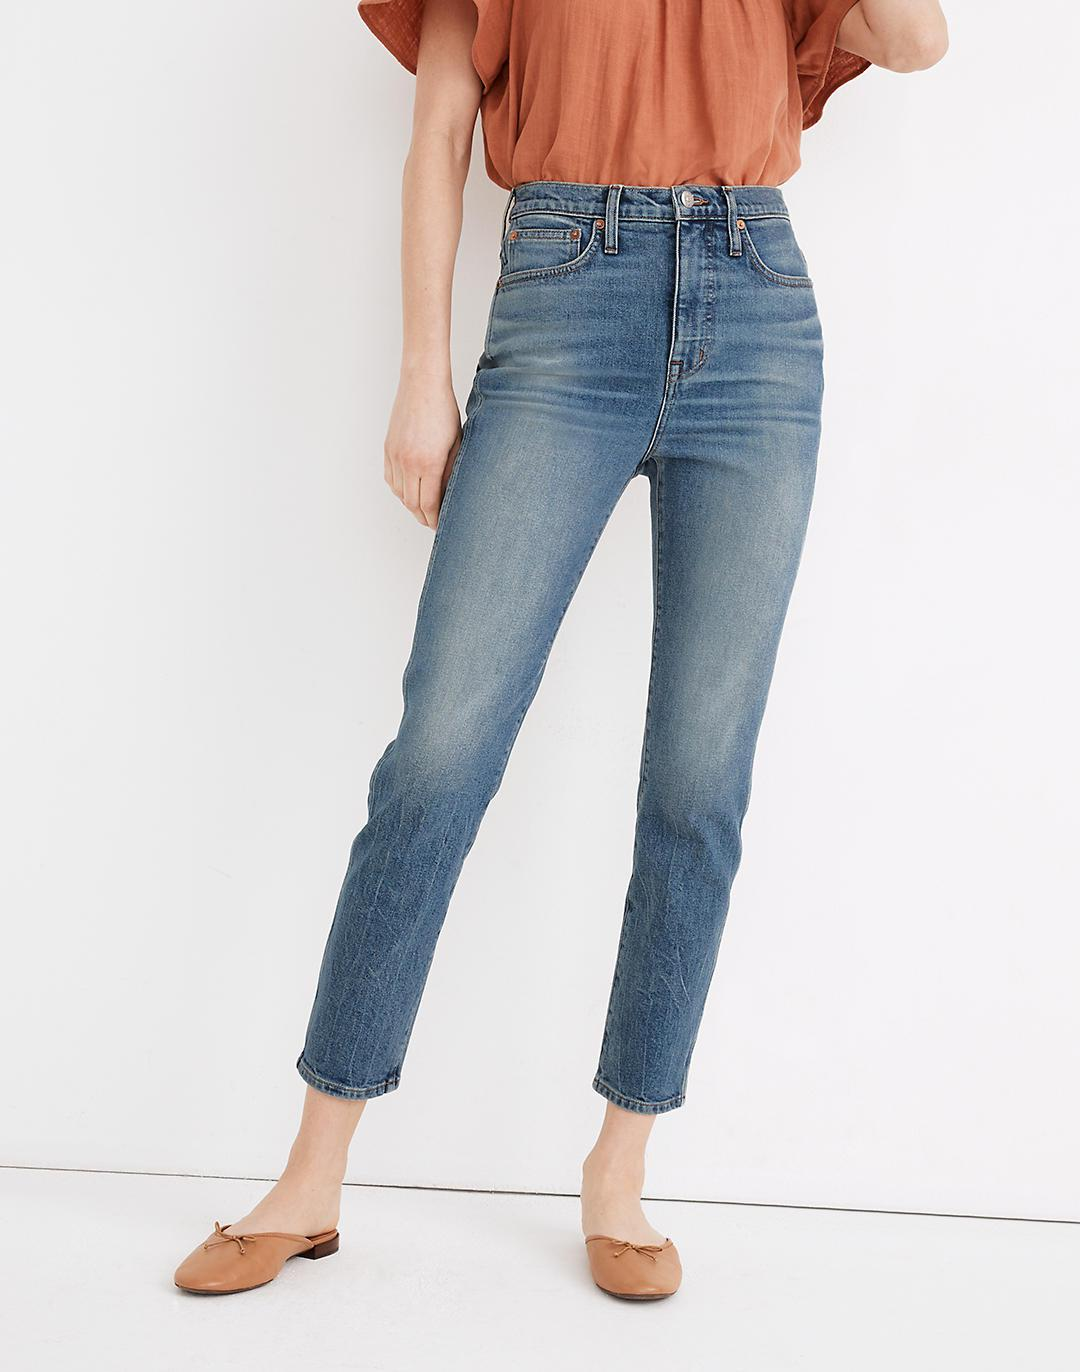 Rivet & Thread High-Rise Stovepipe Jeans in Keyes Wash 3